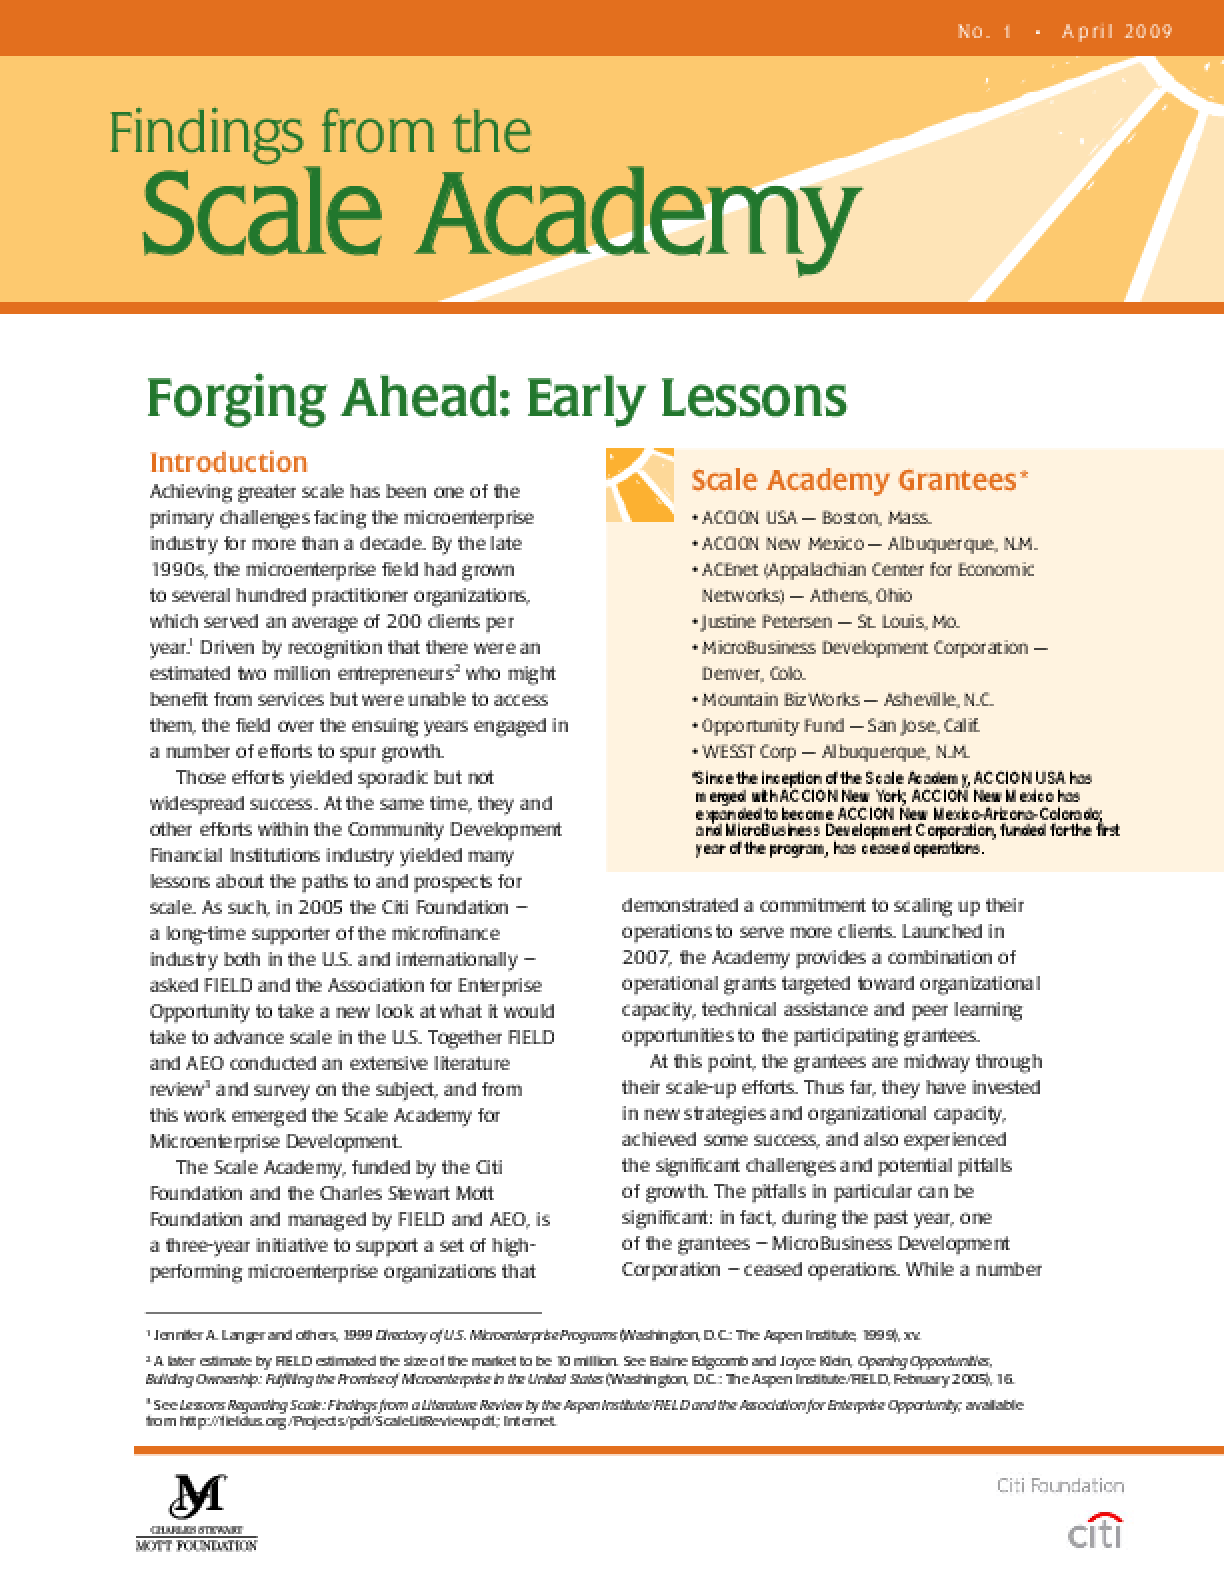 Forging Ahead: Early Lessons